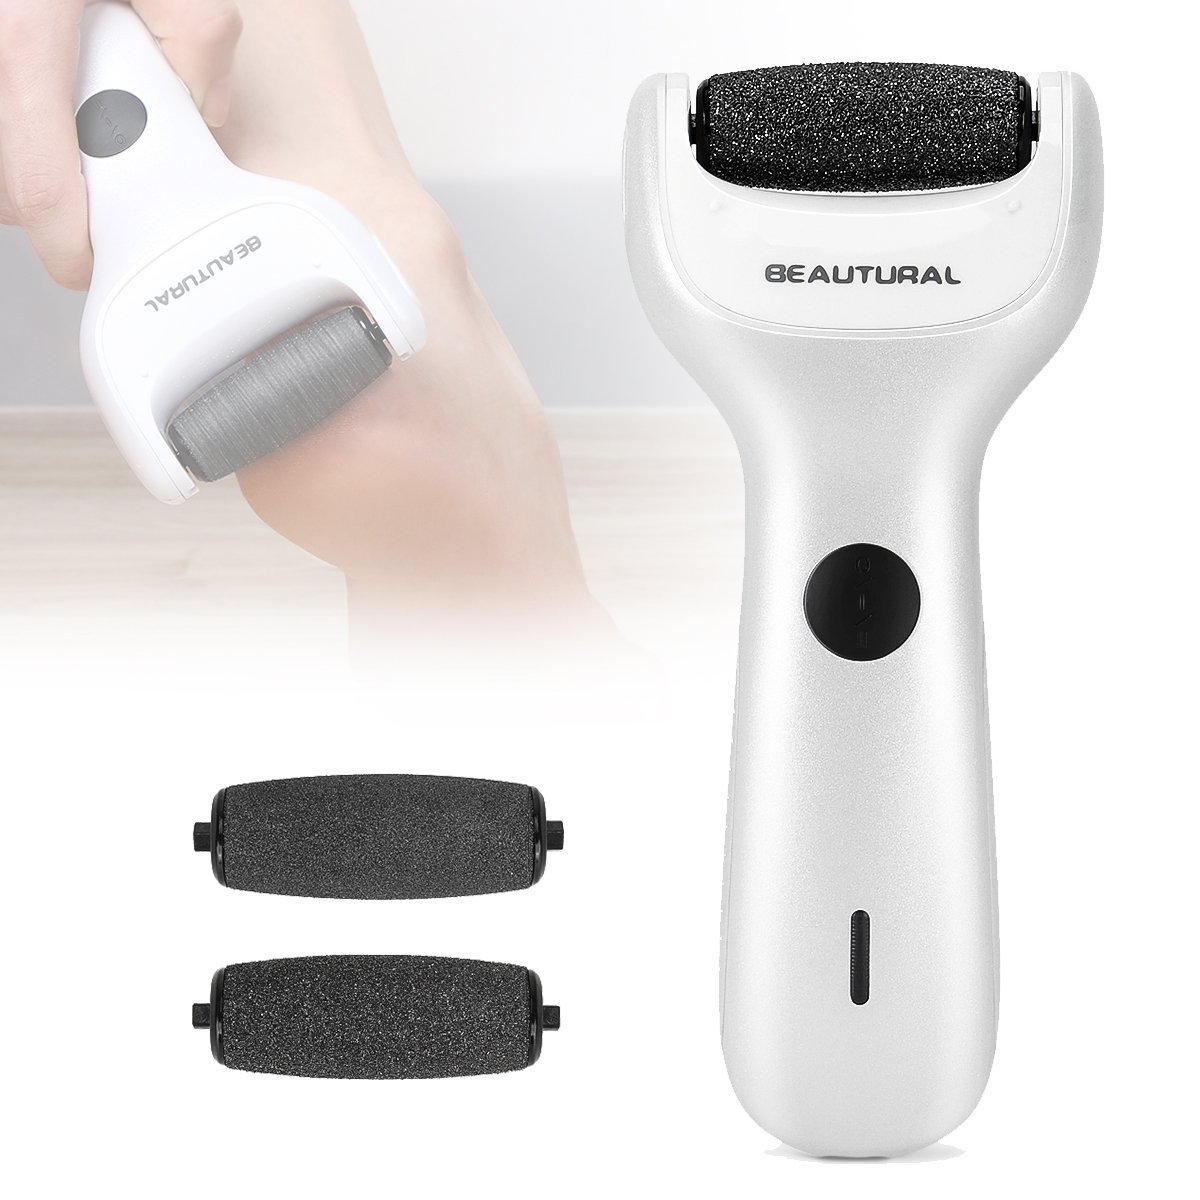 Beautural Electric Foot File with 3 Extra Rollers, Waterproof Wet & Dry Rechargeable Pedicure Tool Electronic Callus Remover and Hard Skin Remover, 1 Mineral Pumice Stone Roller + 2 Replacement included 1byone Products Inc.